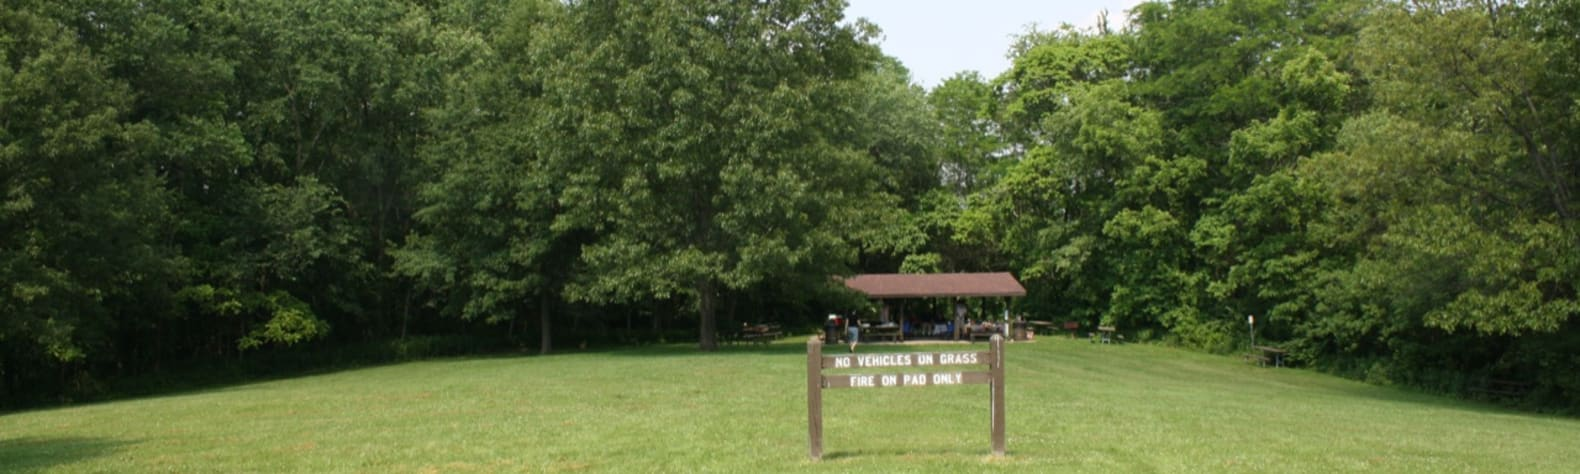 Jubilee College State Park